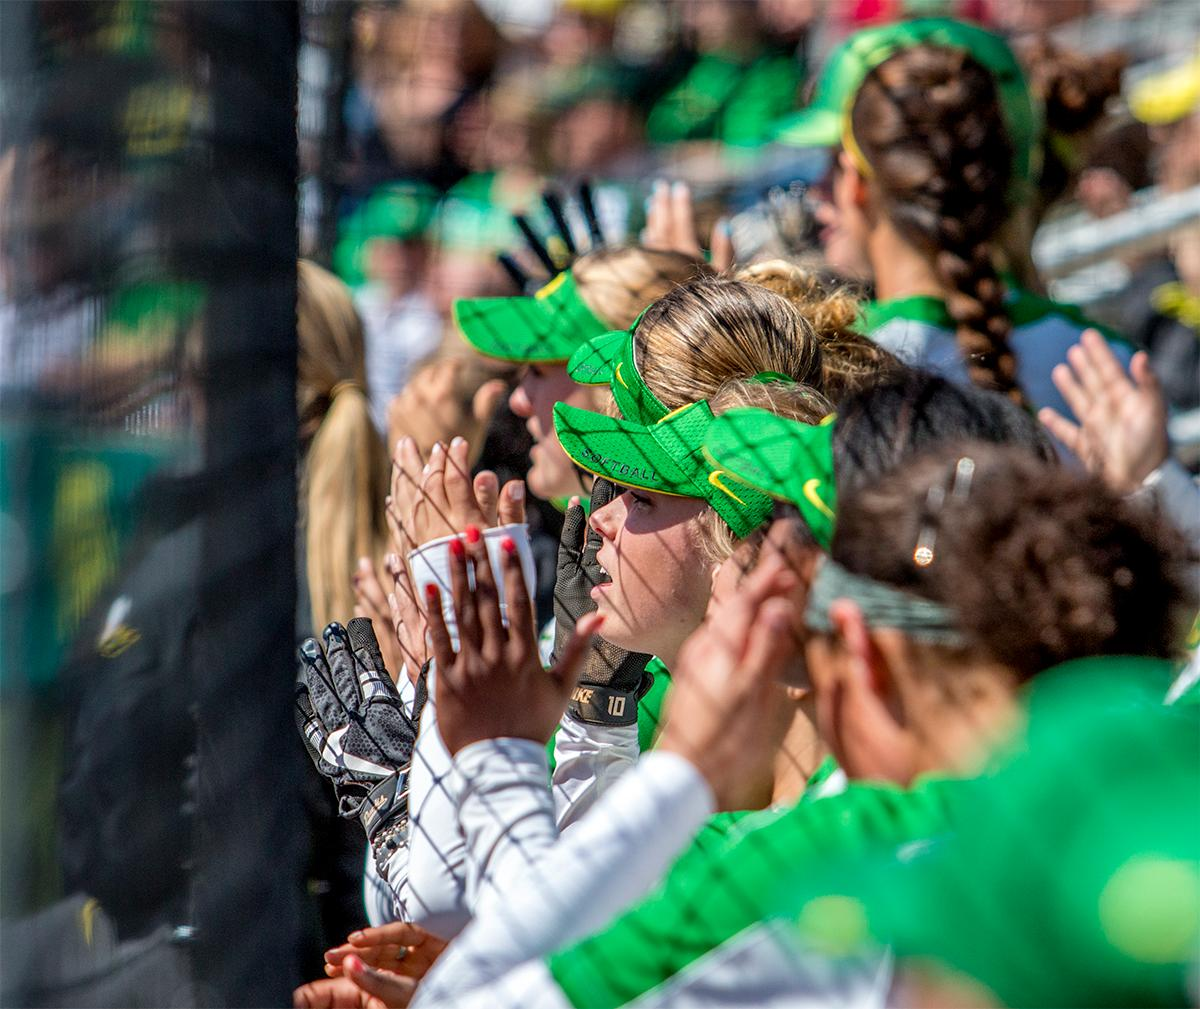 The Ducks team in the dugout cheer on their teammates on the field. The Oregon Ducks Softball team took their third win over the Arizona Sun Devils, 1-0, in the final game of the weekends series that saw the game go into an eighth inning before the Duck?s Mia Camuso (#7) scored a hit allowing teammate Haley Cruse (#26) to run into home plate for a point. The Ducks are now 33-0 this season and will next play a double header against Portland State on Tuesday, April 4 at Jane Sanders Stadium. Photo by August Frank, Oregon News Lab